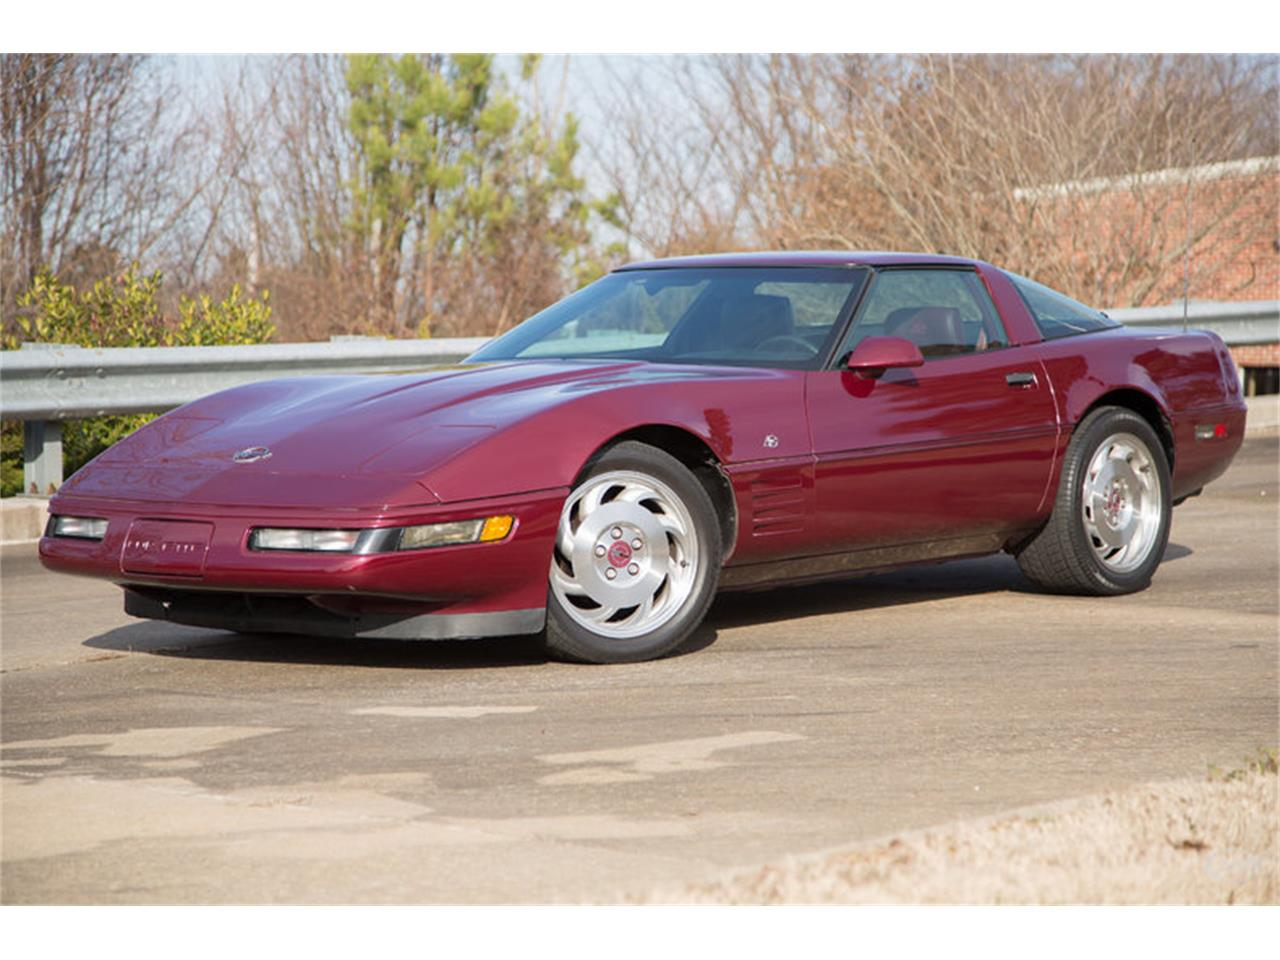 Large Picture of '93 Chevrolet Corvette located in Tennessee - $11,900.00 - LTTZ